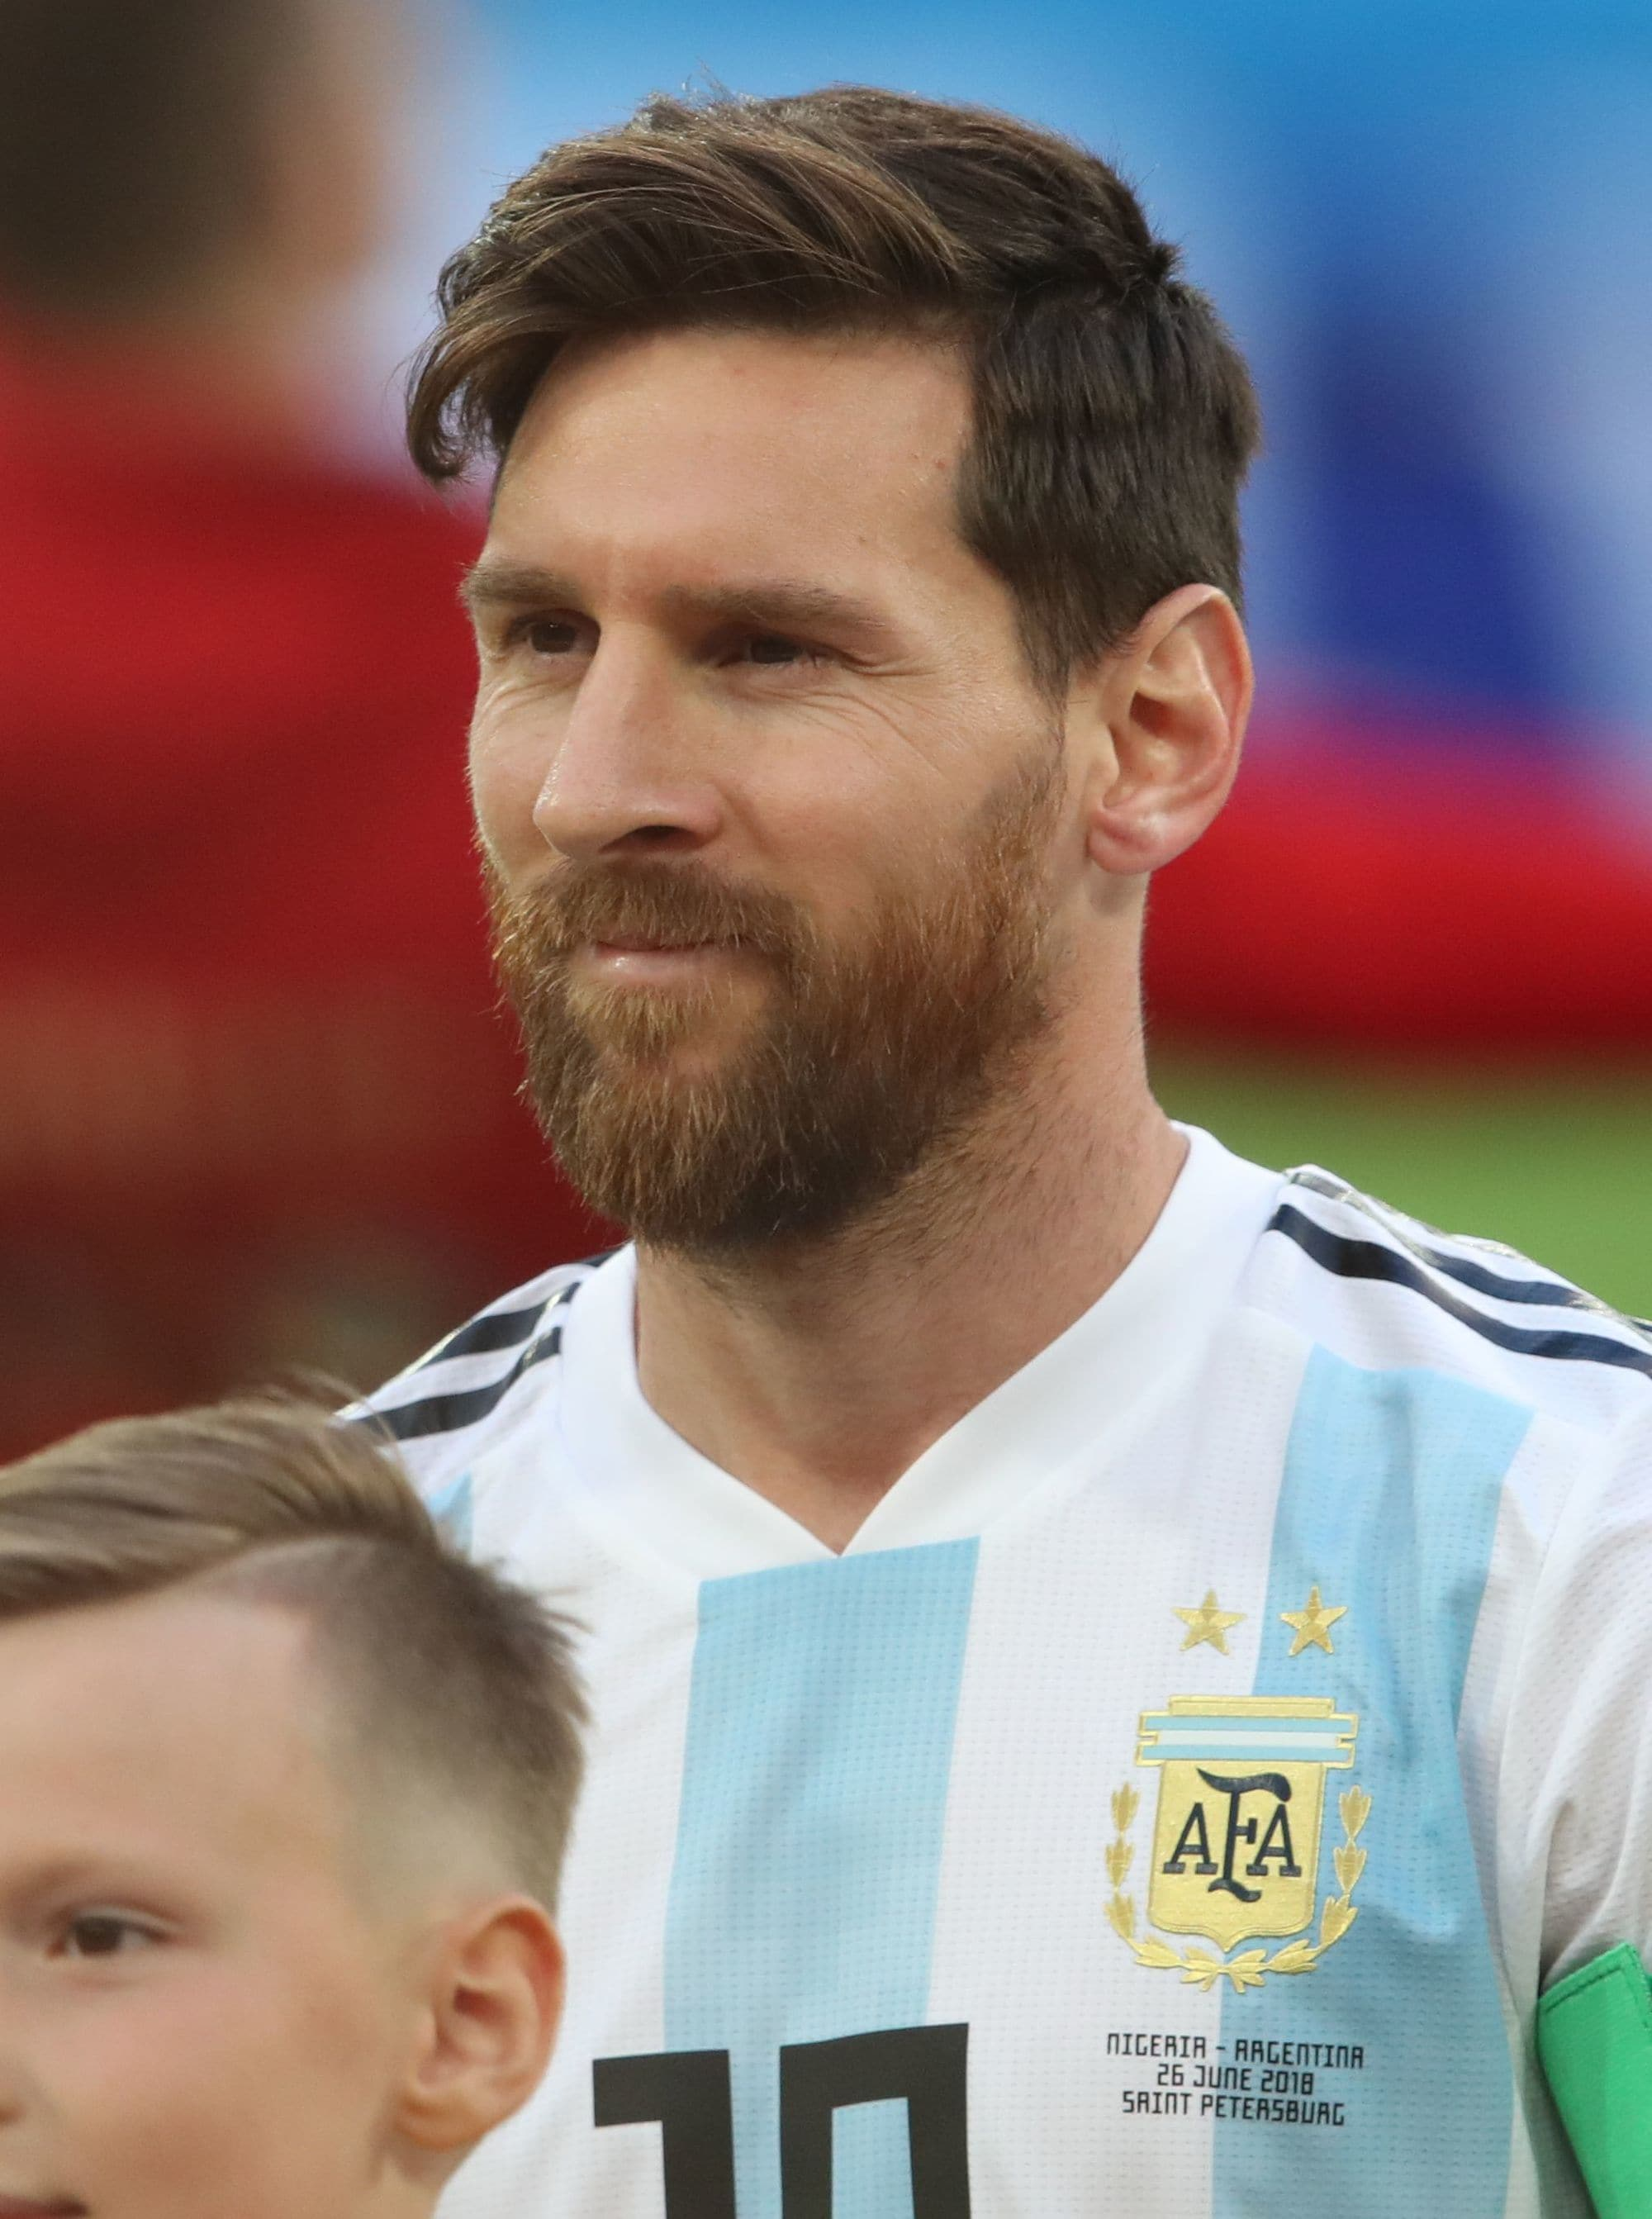 footballer hairstyles: lionel messi with brown short hair styled in a comb over